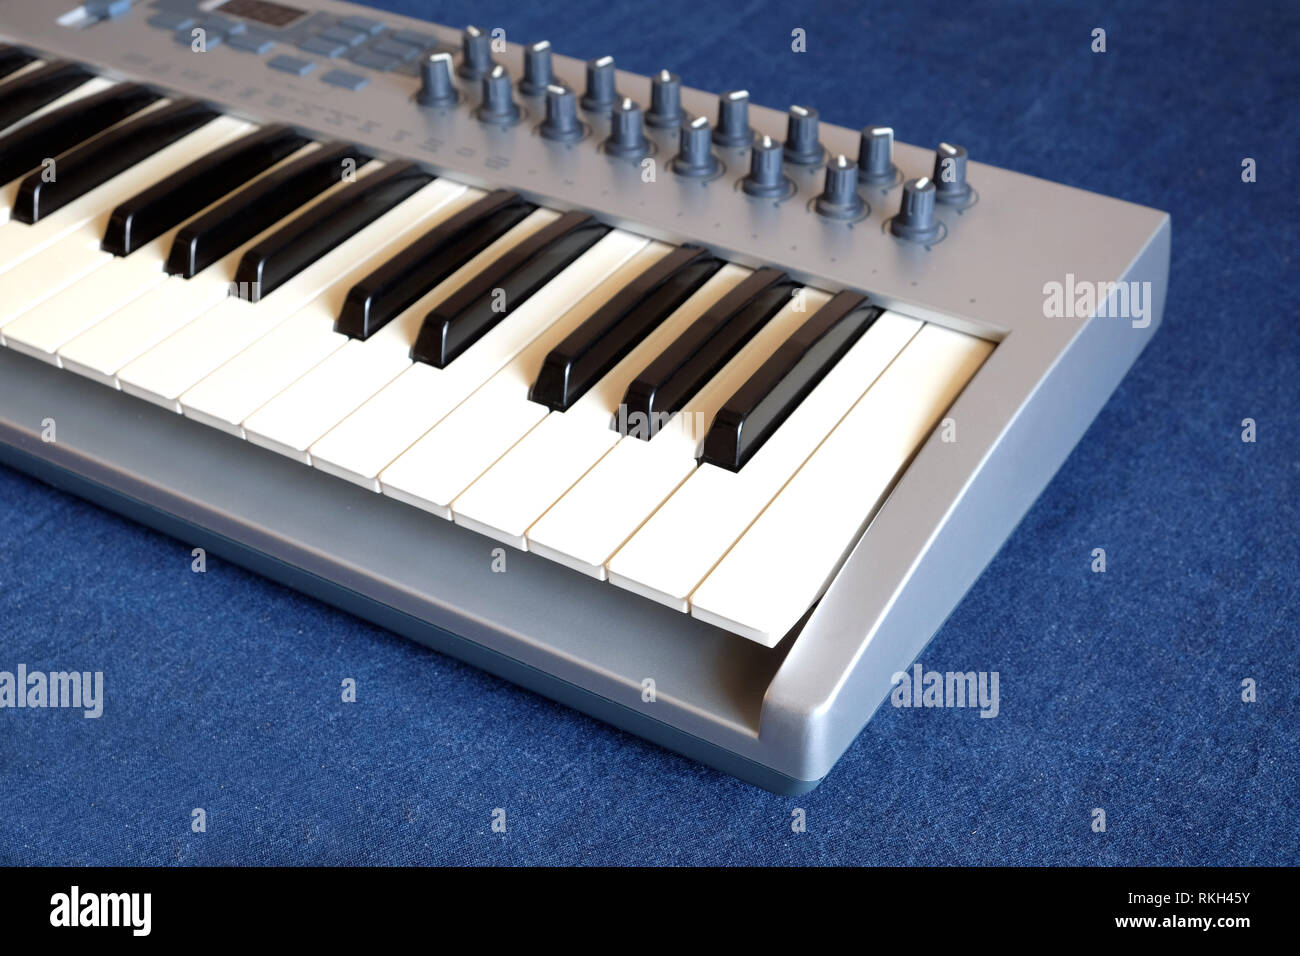 Electronic synthesizer keyboard with many control knobs on denim background side view closeup - Stock Image